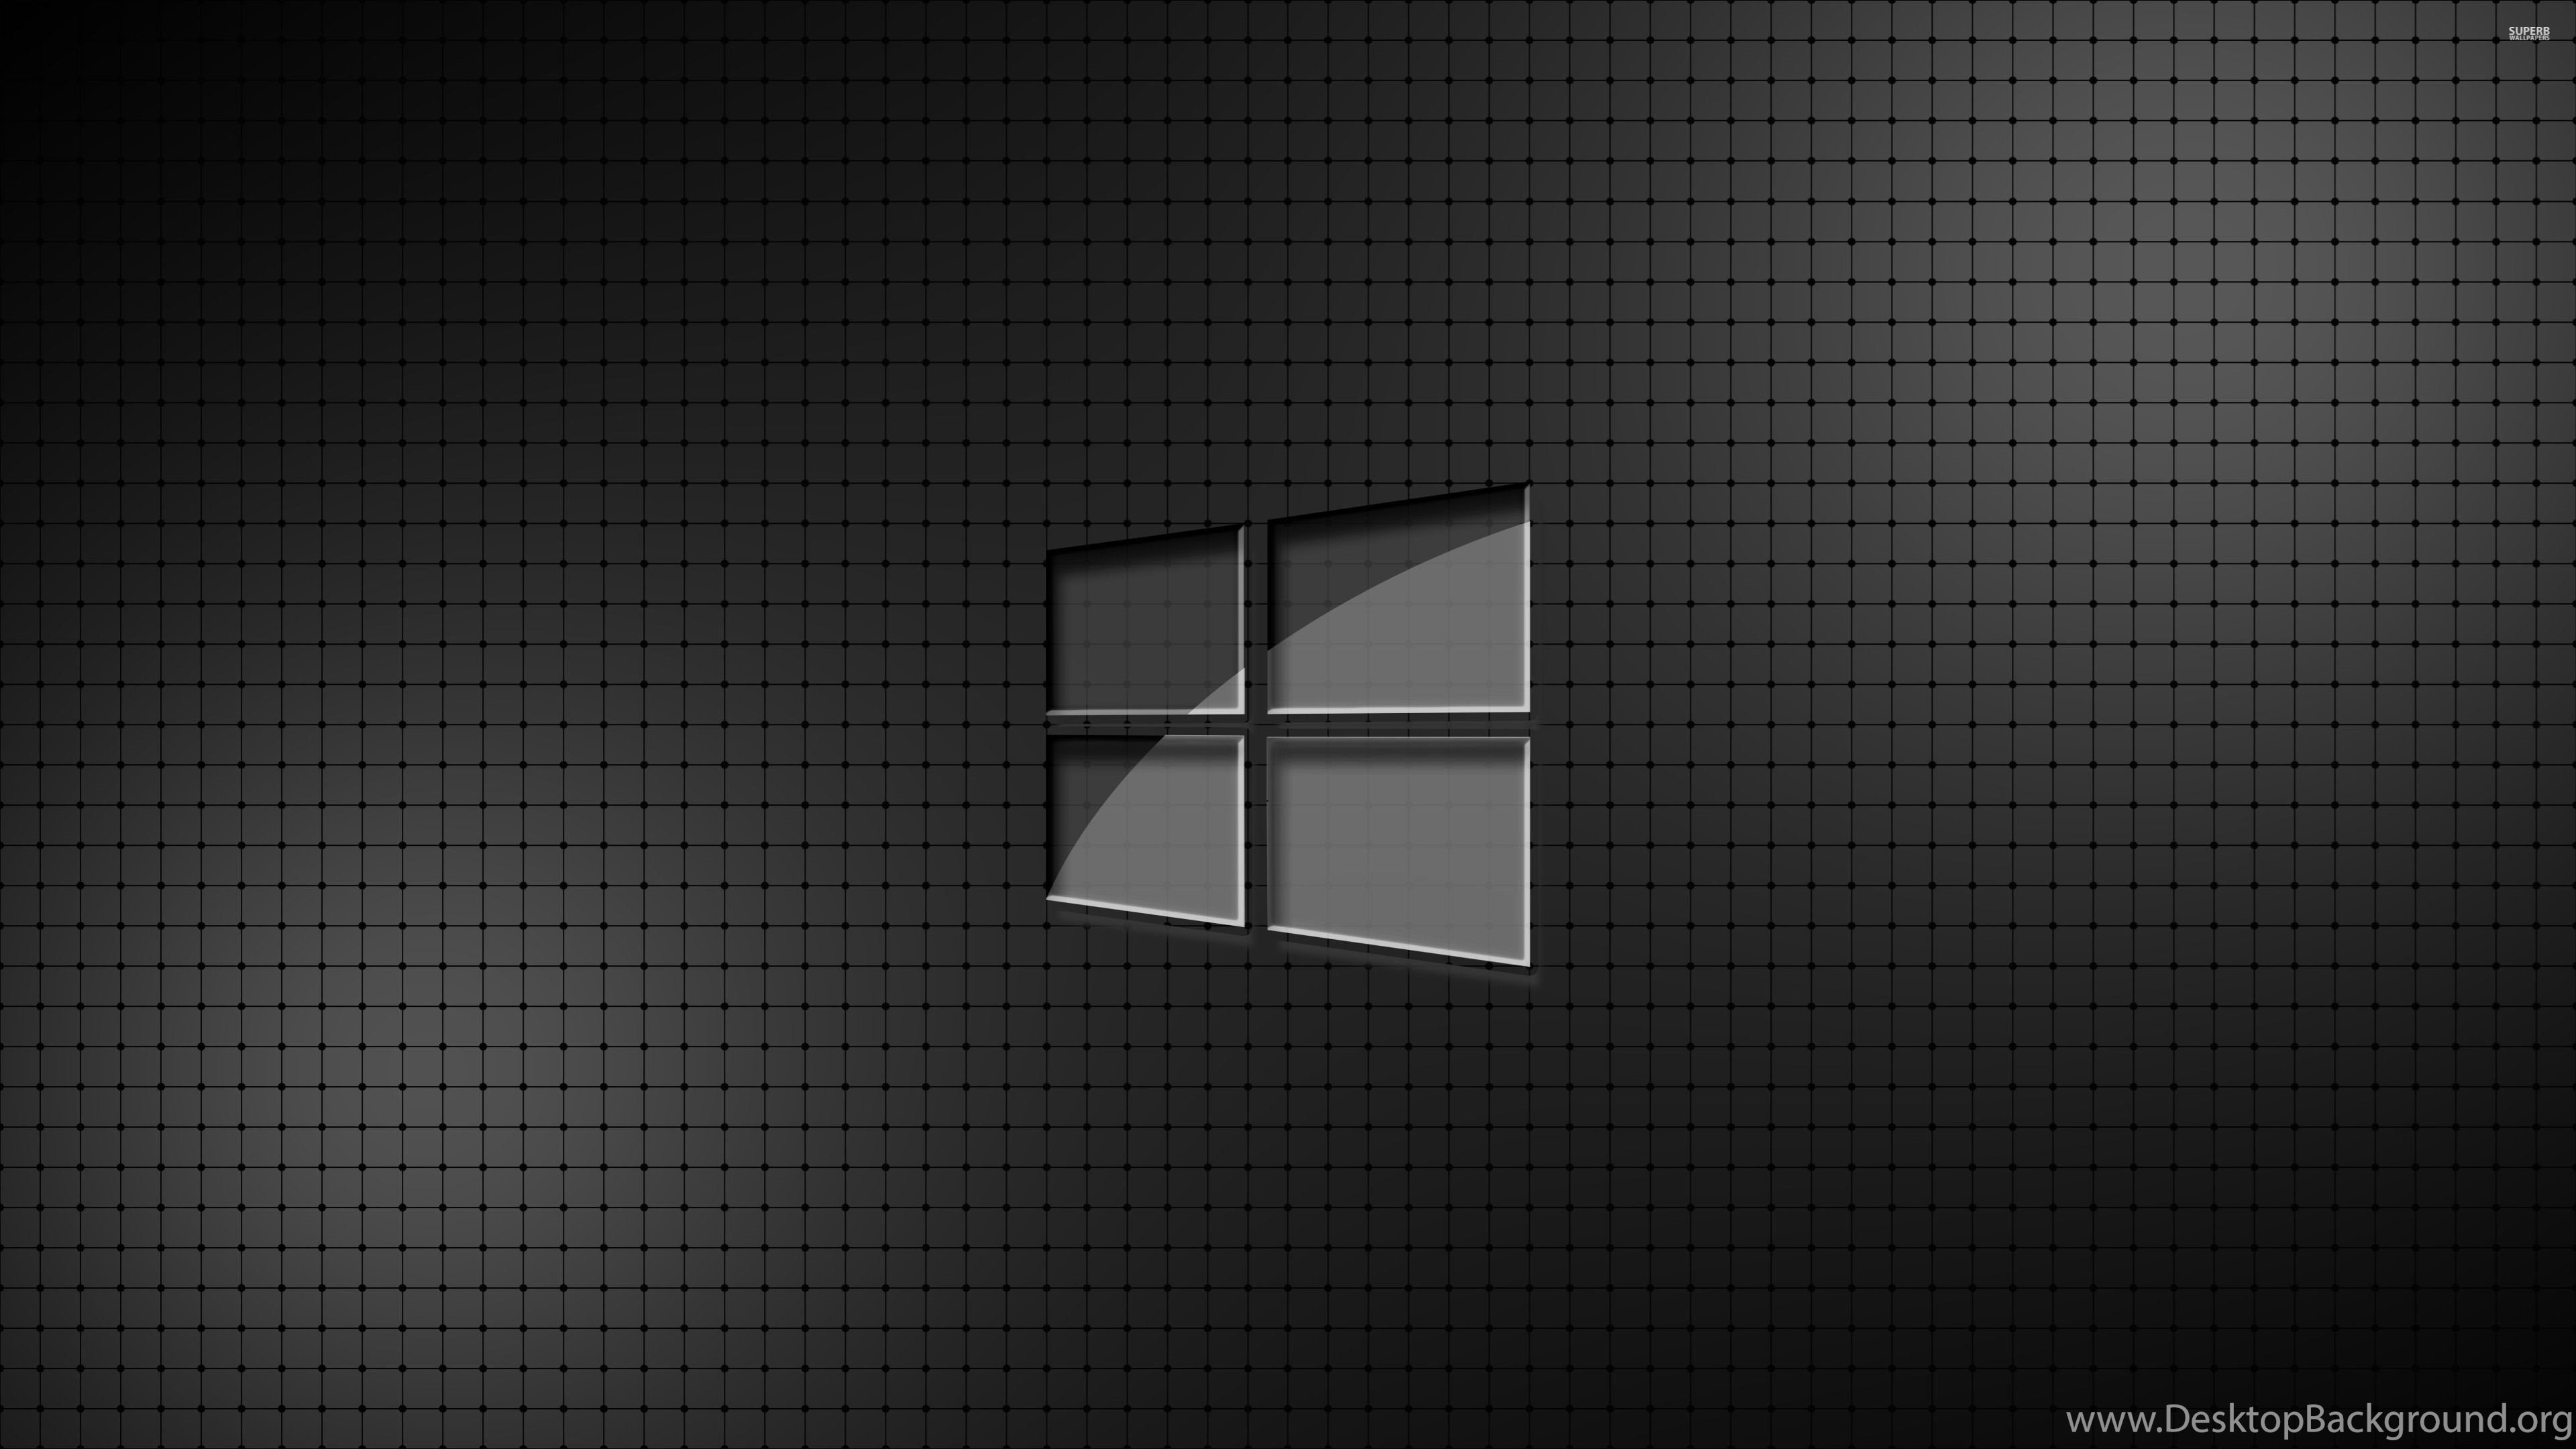 Iphone 6s Carbon Fiber Wallpaper Glass Windows 10 On A Grid Wallpapers Computer Wallpapers